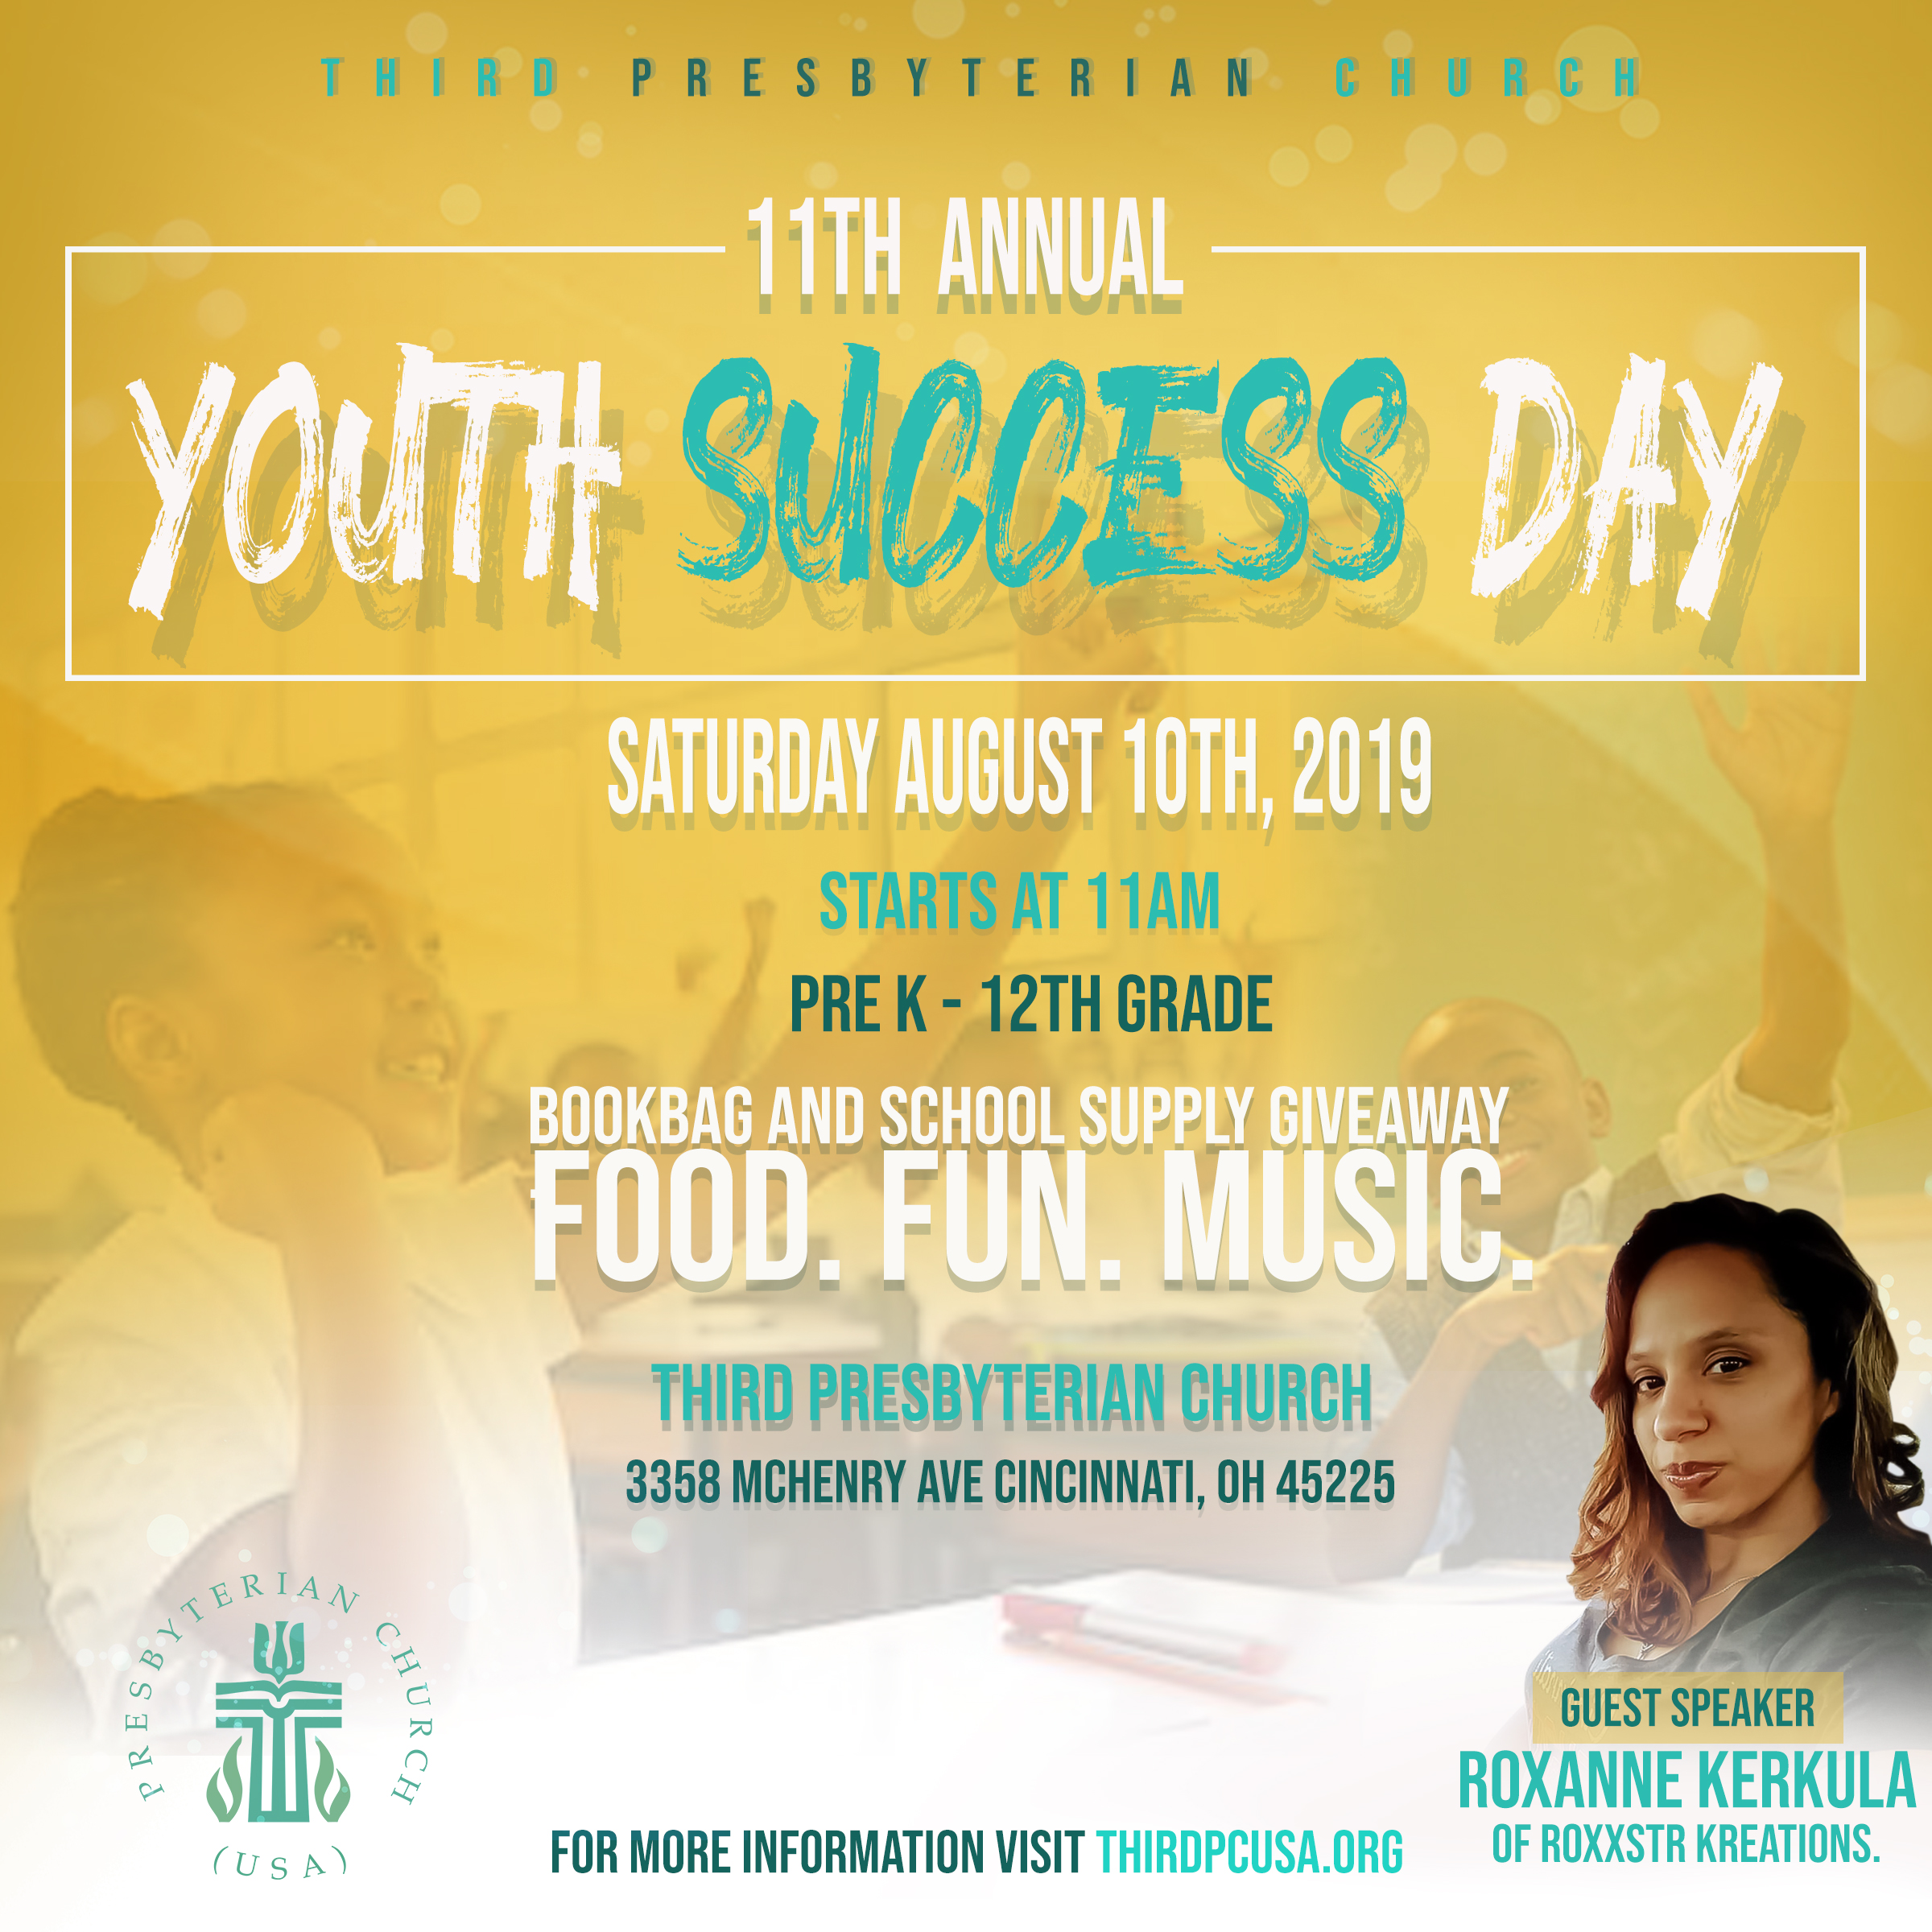 Third PCUSA presents… 11th Annual Youth Success Day : Sat. Aug 10th – Cincinnati, OH